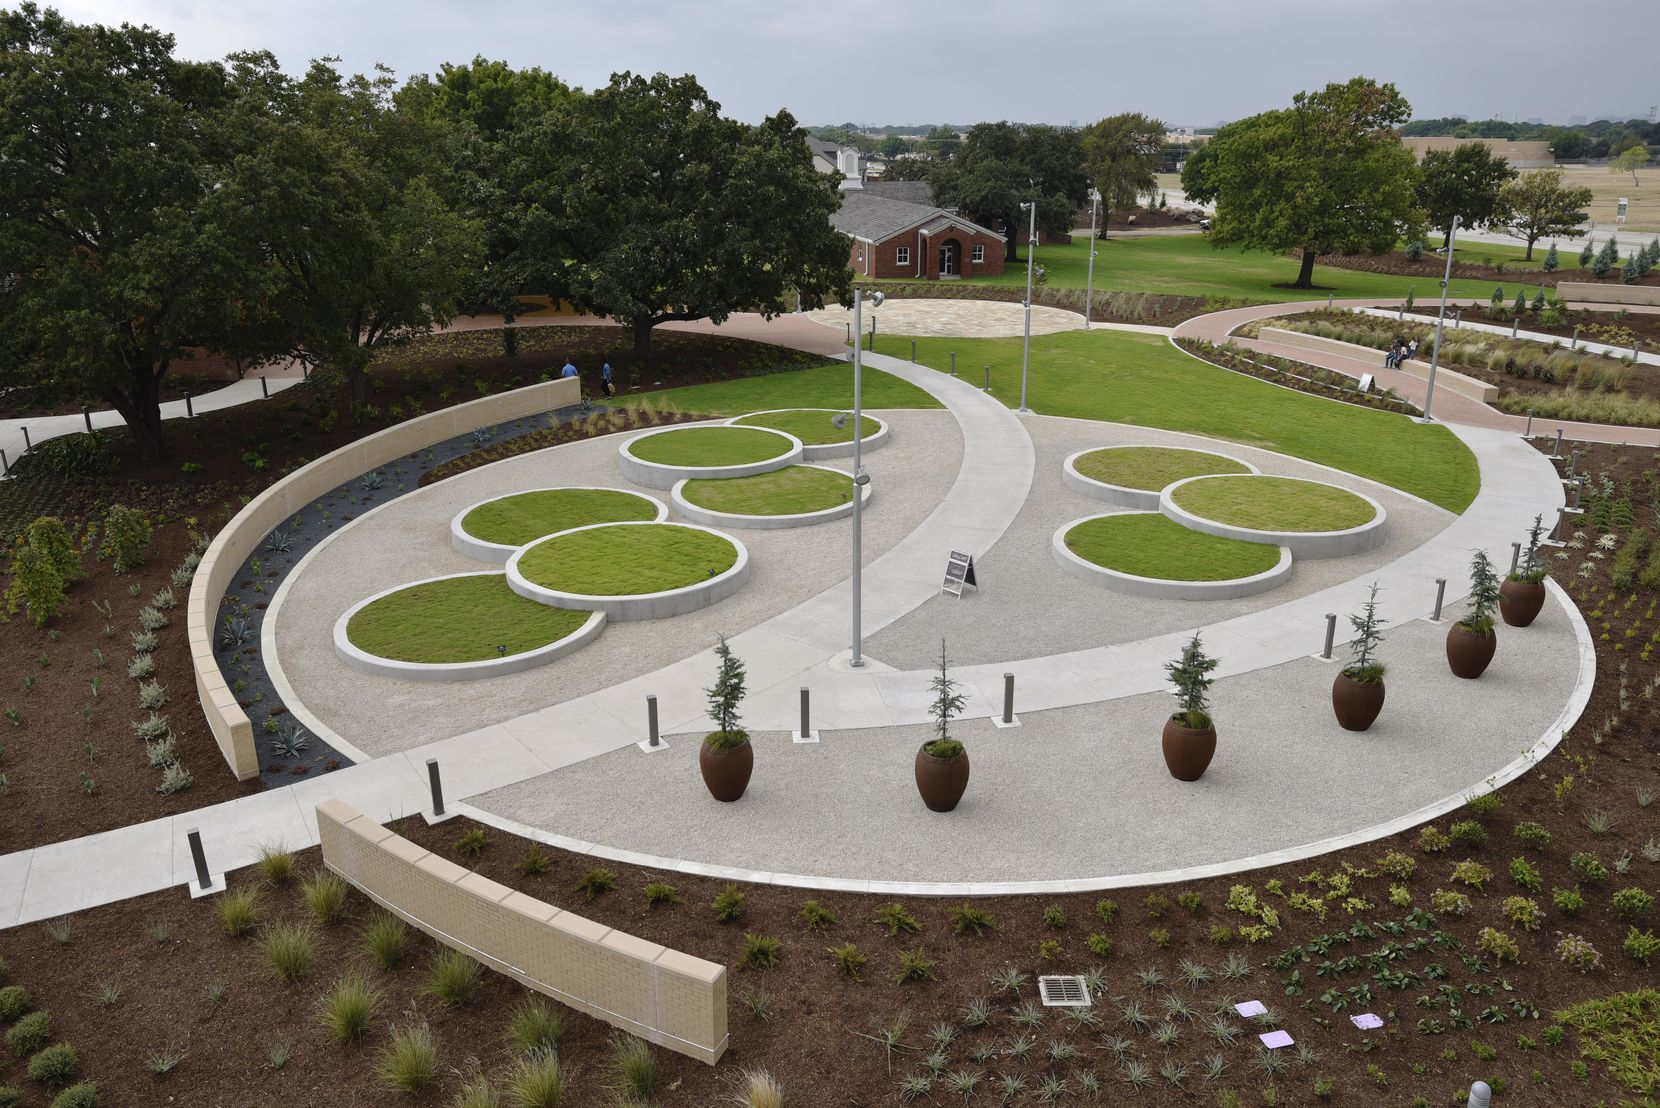 The Gardens at the Texas A&M AgriLife Center at Dallas during the grand opening. The circle beds of grass contain turfgrass varieties developed at the center.